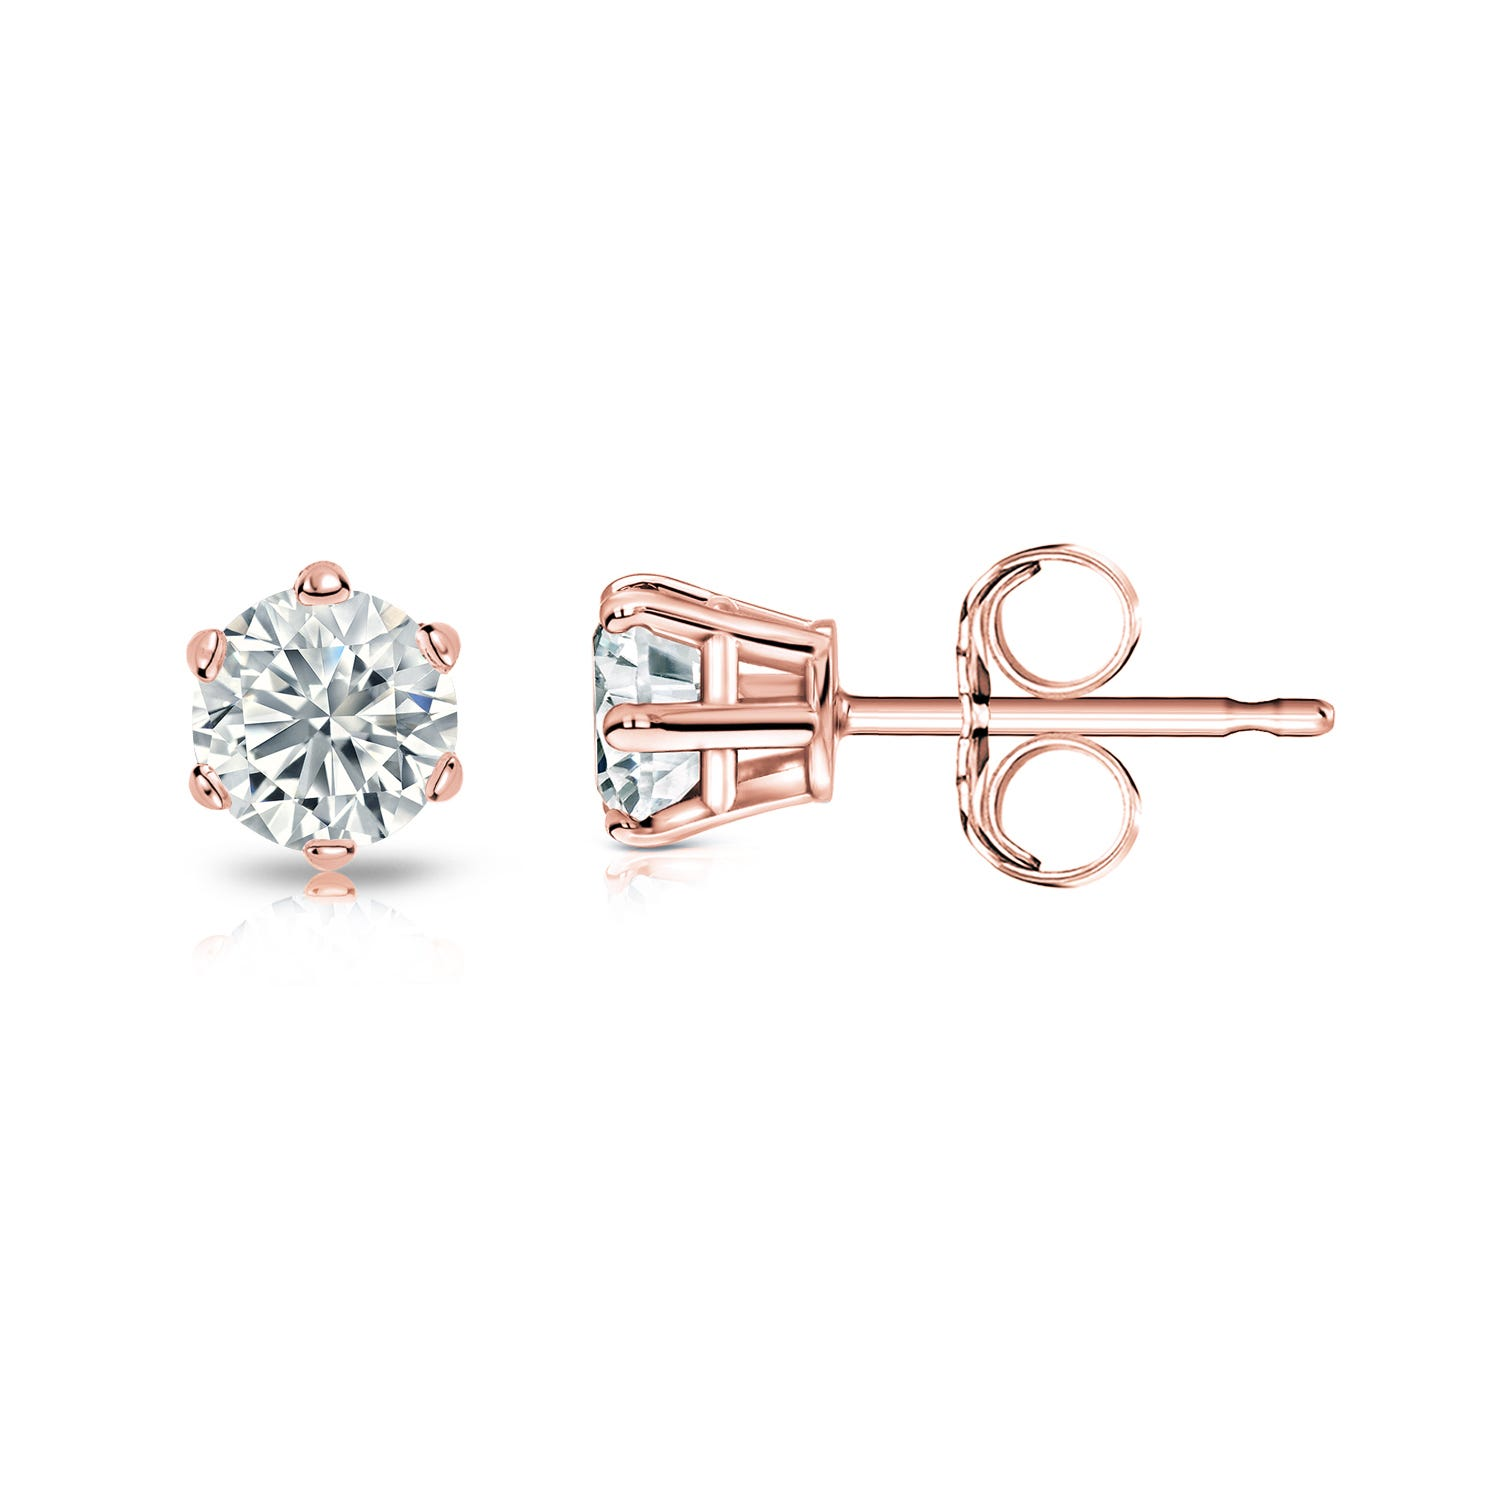 Round Diamond 1/5ctw. (IJ-VS2) Solitaire Stud 6-Prong Earrings in 14K Rose Gold